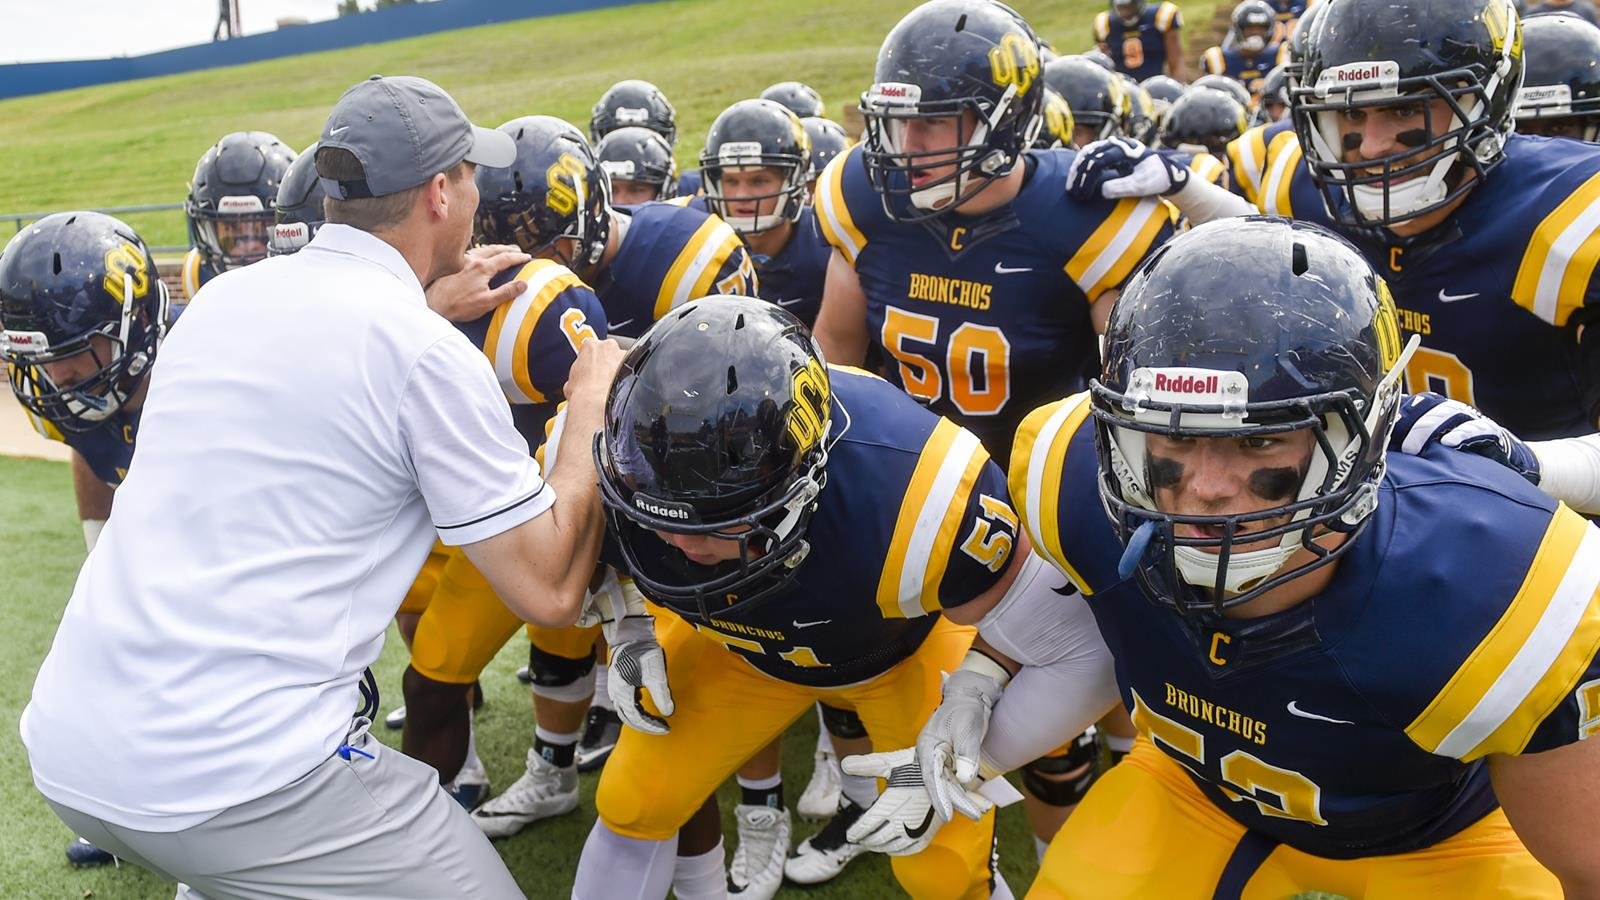 uco announces 2018 football schedule - university of central